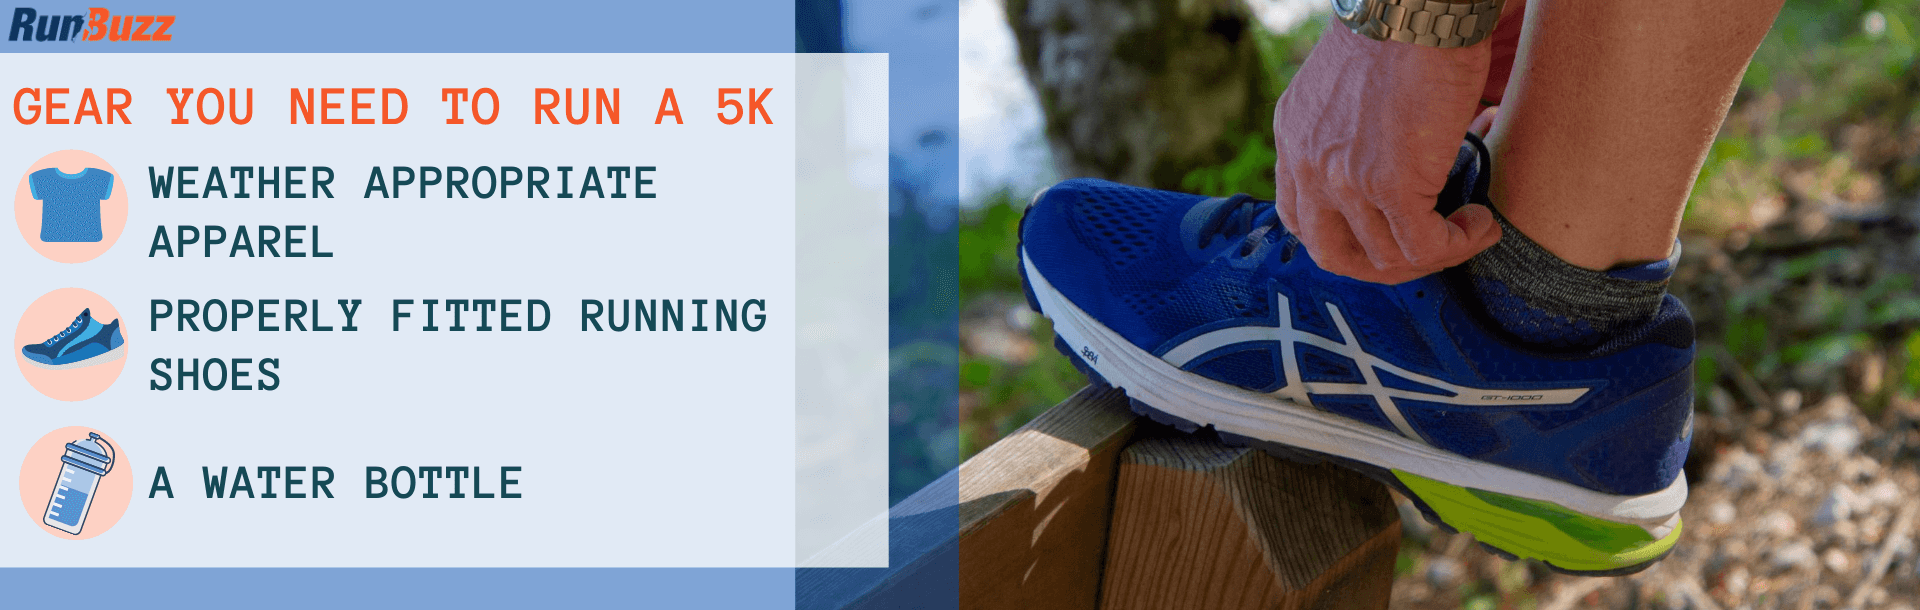 Gear-You-Need-to-Run-a-5K